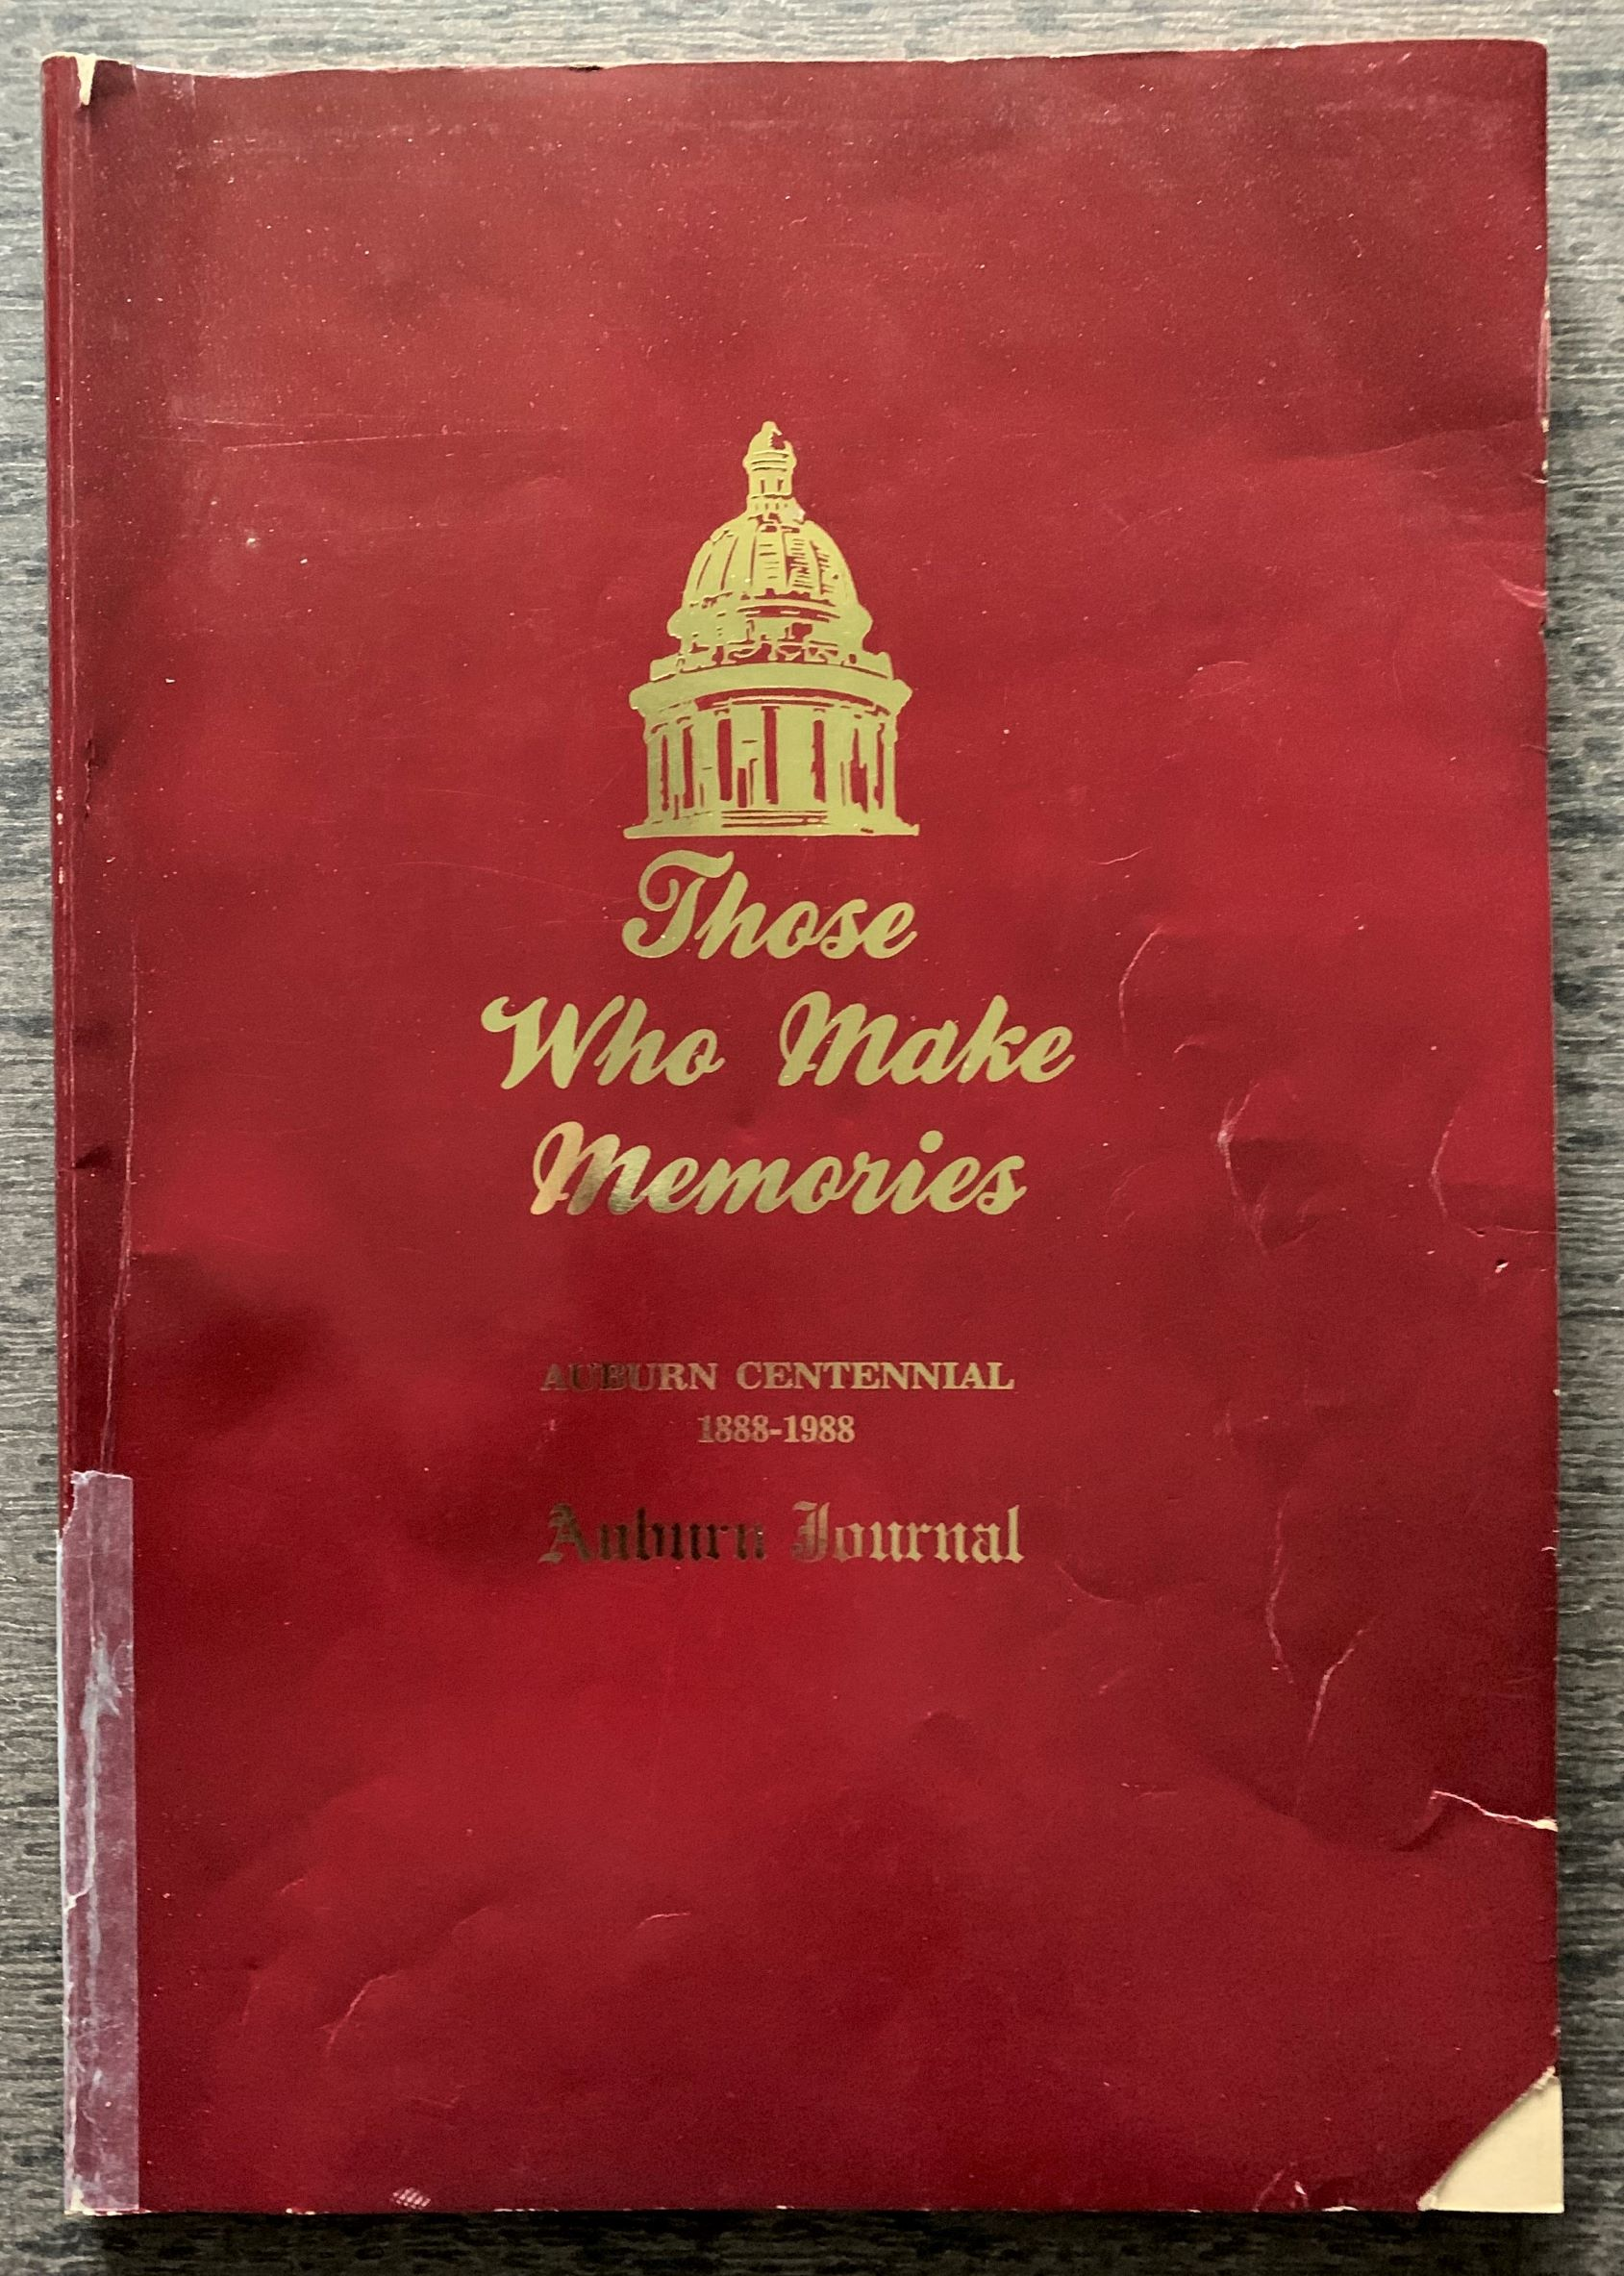 Image for Those Who Make Memories, Auburn Centennial 1888-1988 [cover title].